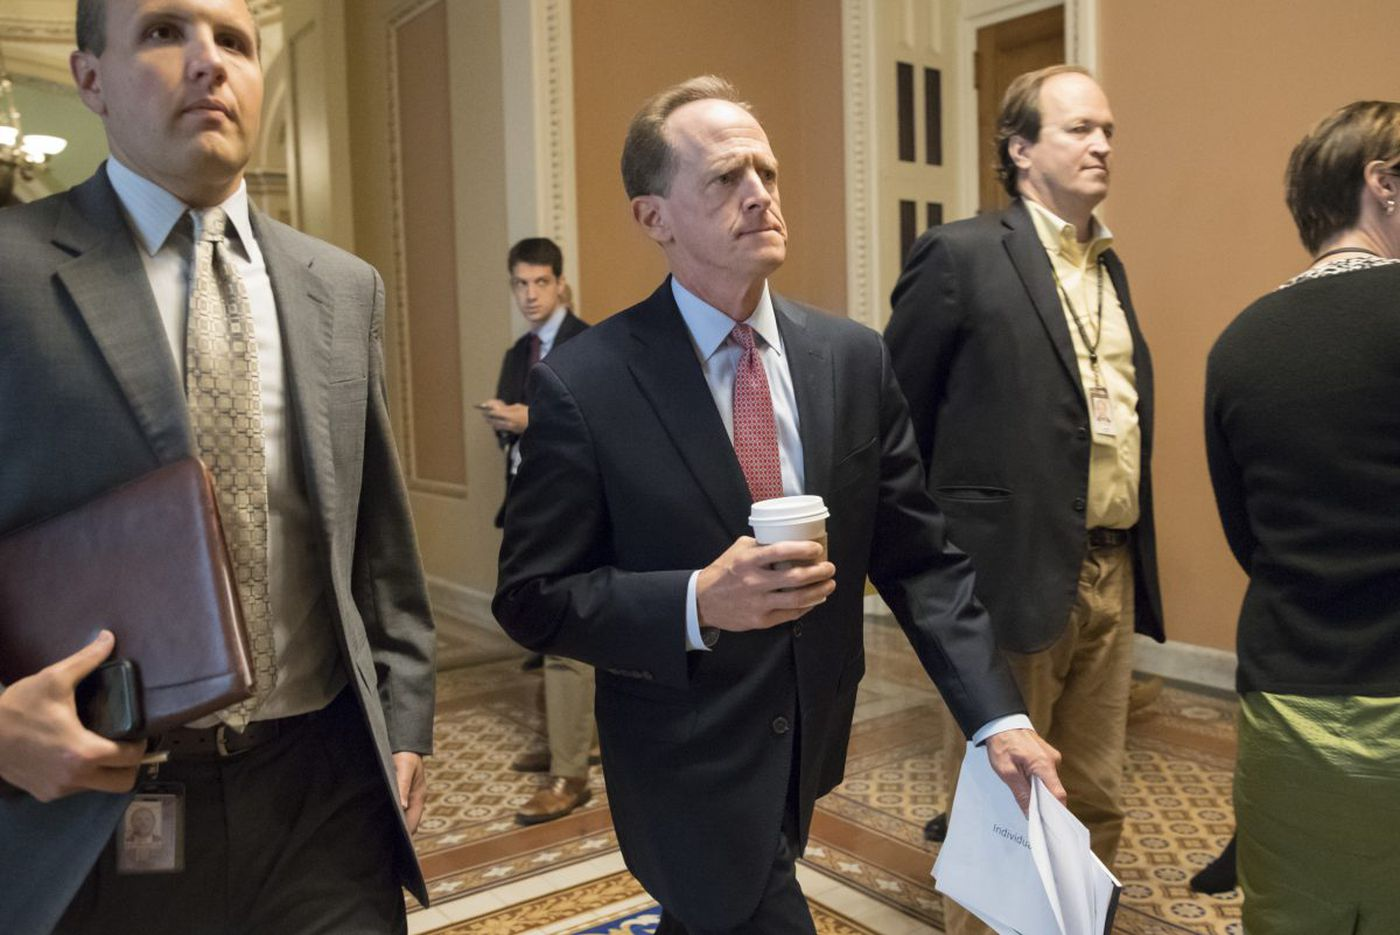 Pat Toomey still backs background checks - but there's still little chance of passage after Las Vegas shooting